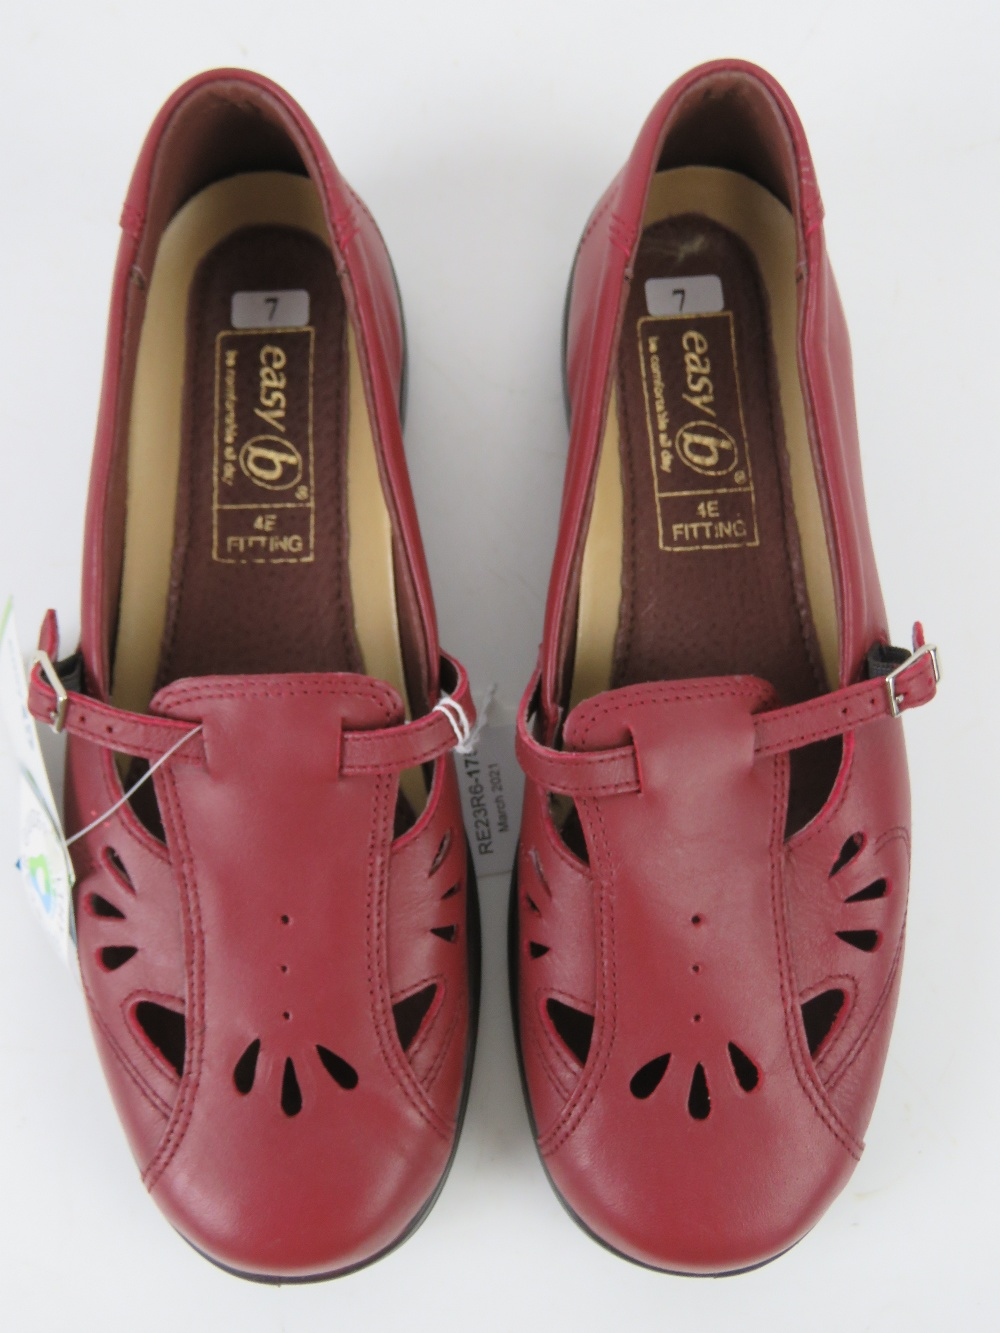 A pair of 'as new' red leather shoes by - Image 2 of 3